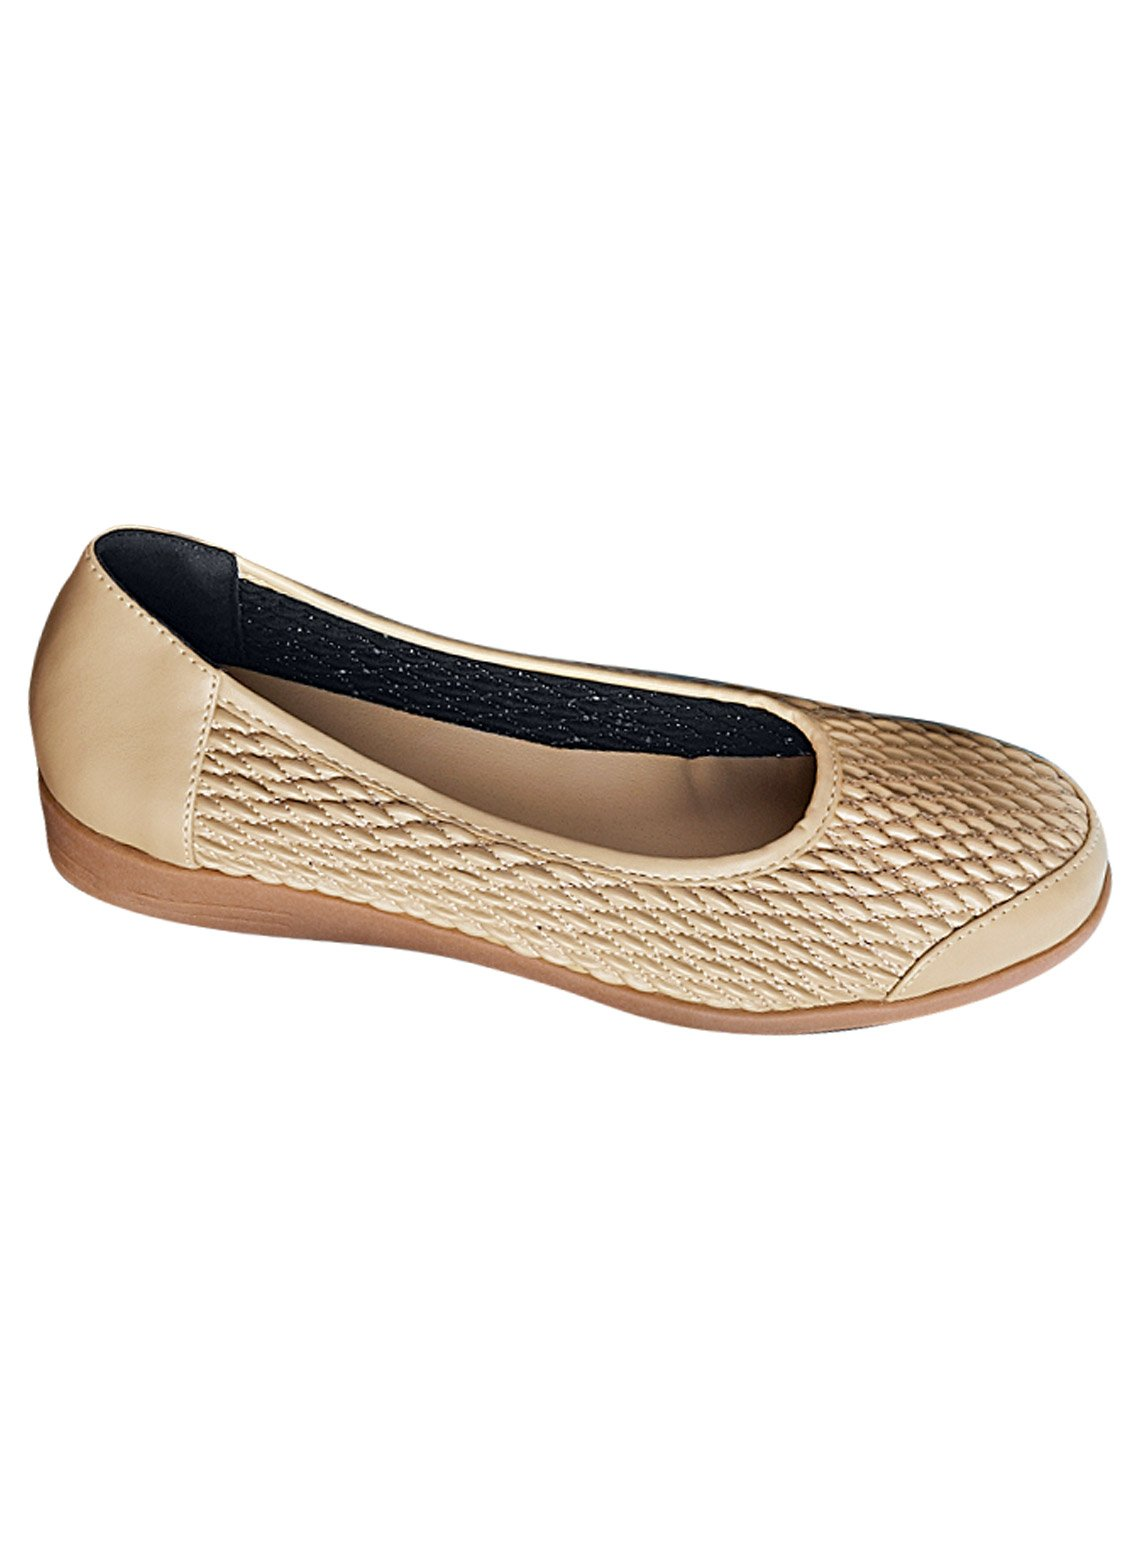 Stretch N Form, Color Beige, Size 10 (Wide), Beige, Size 10 (Wide)